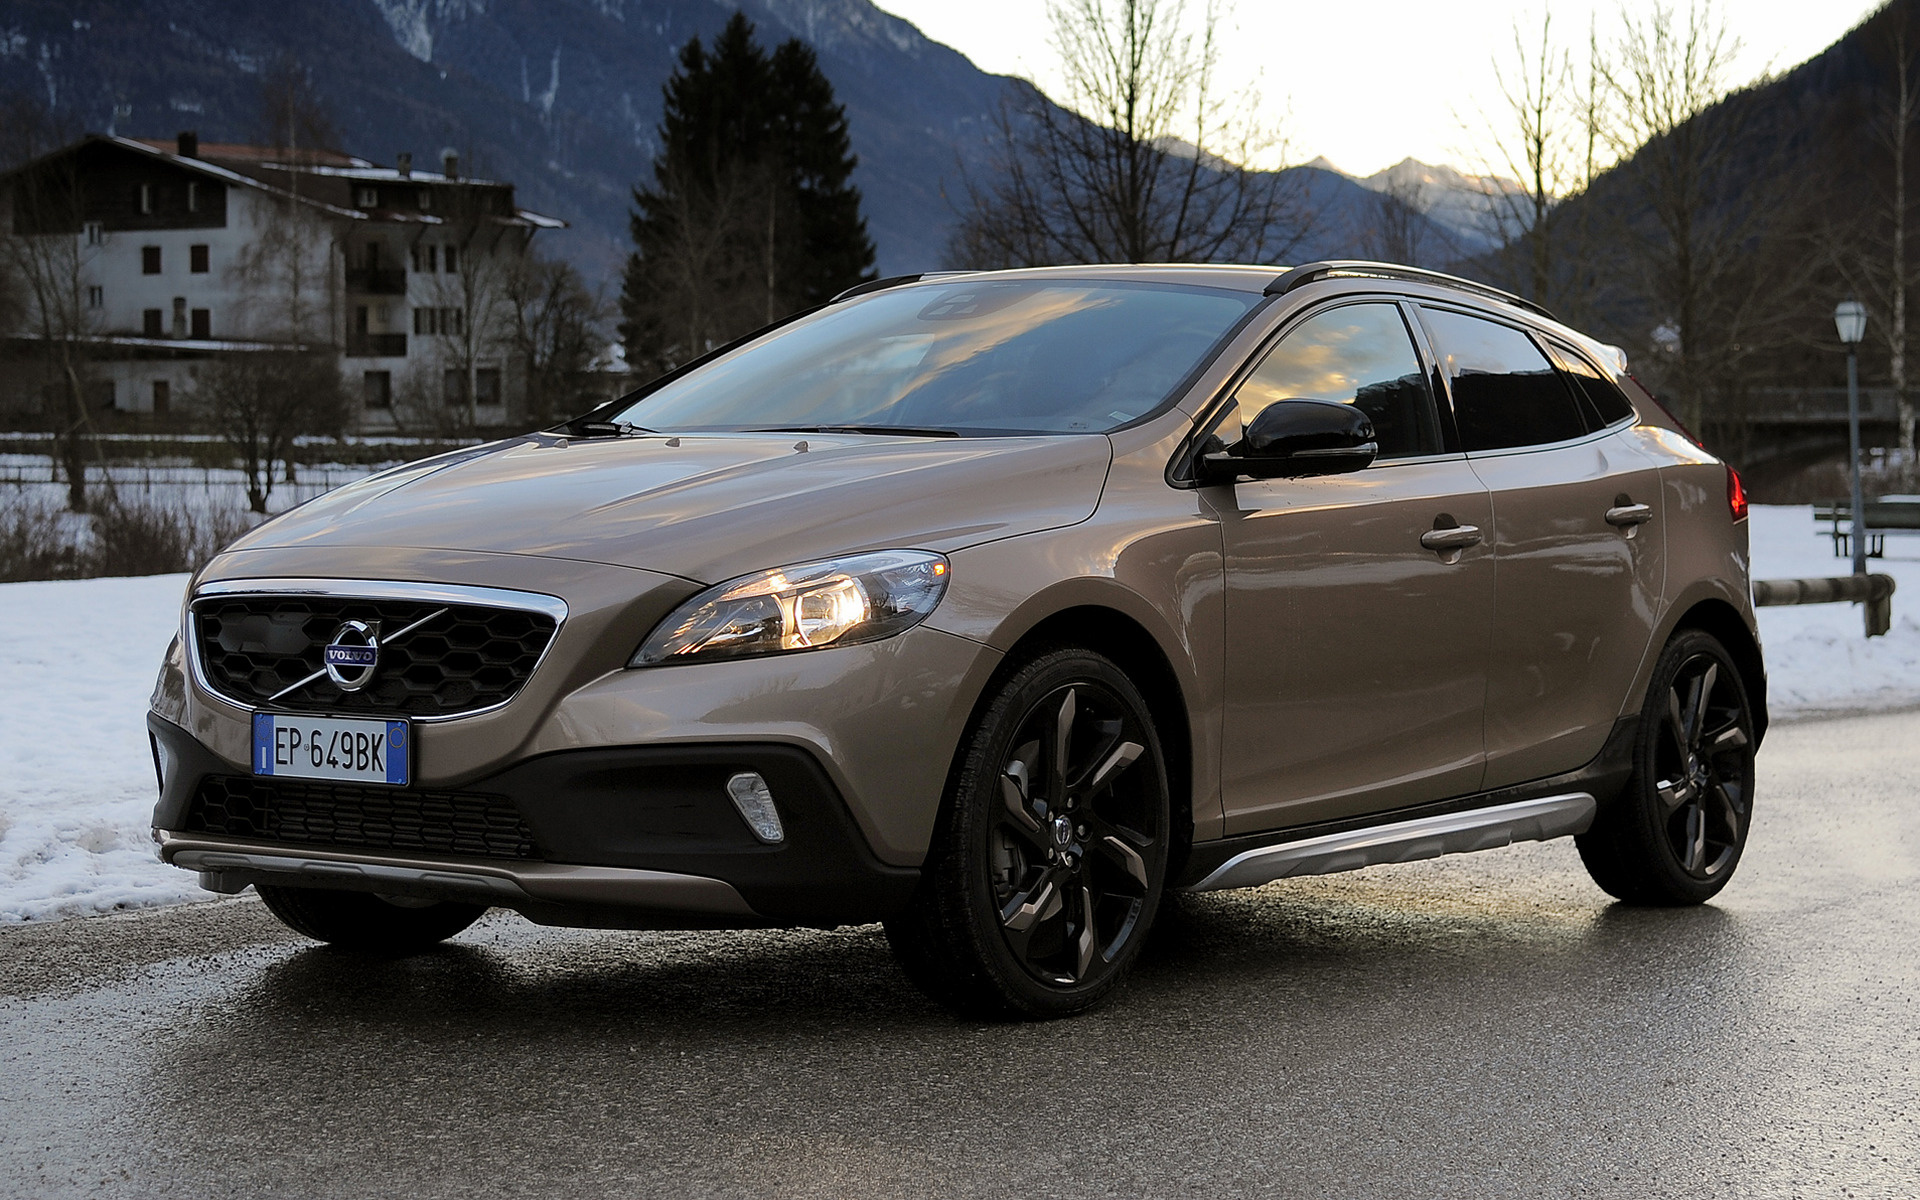 Volvo V40 Cross Country (2012) Wallpapers and HD Images - Car Pixel